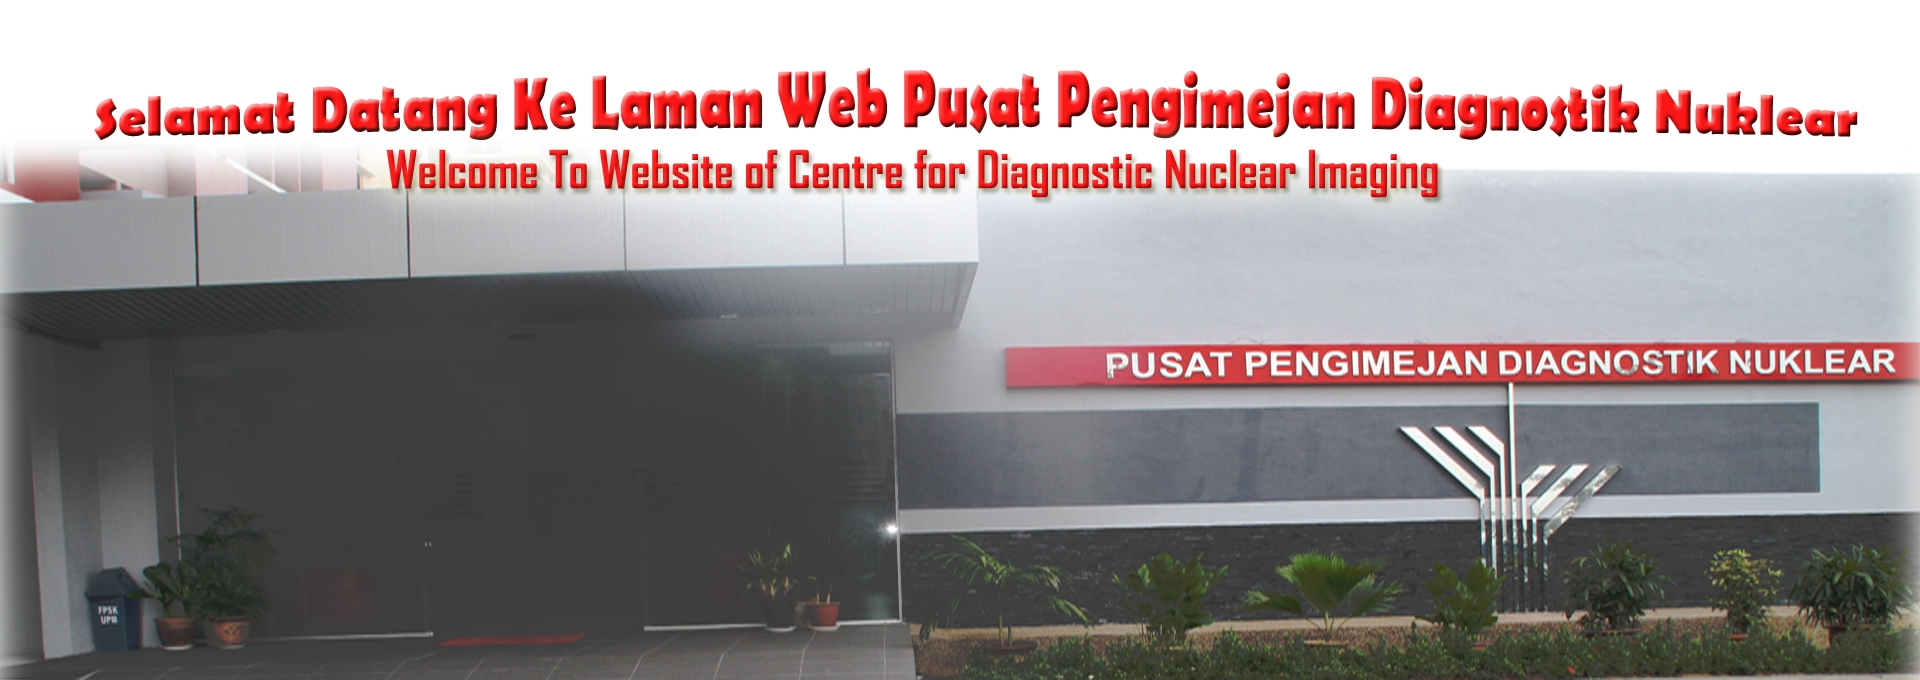 Welcome to Website of Centre For Diagnostic Nuclear Imaging